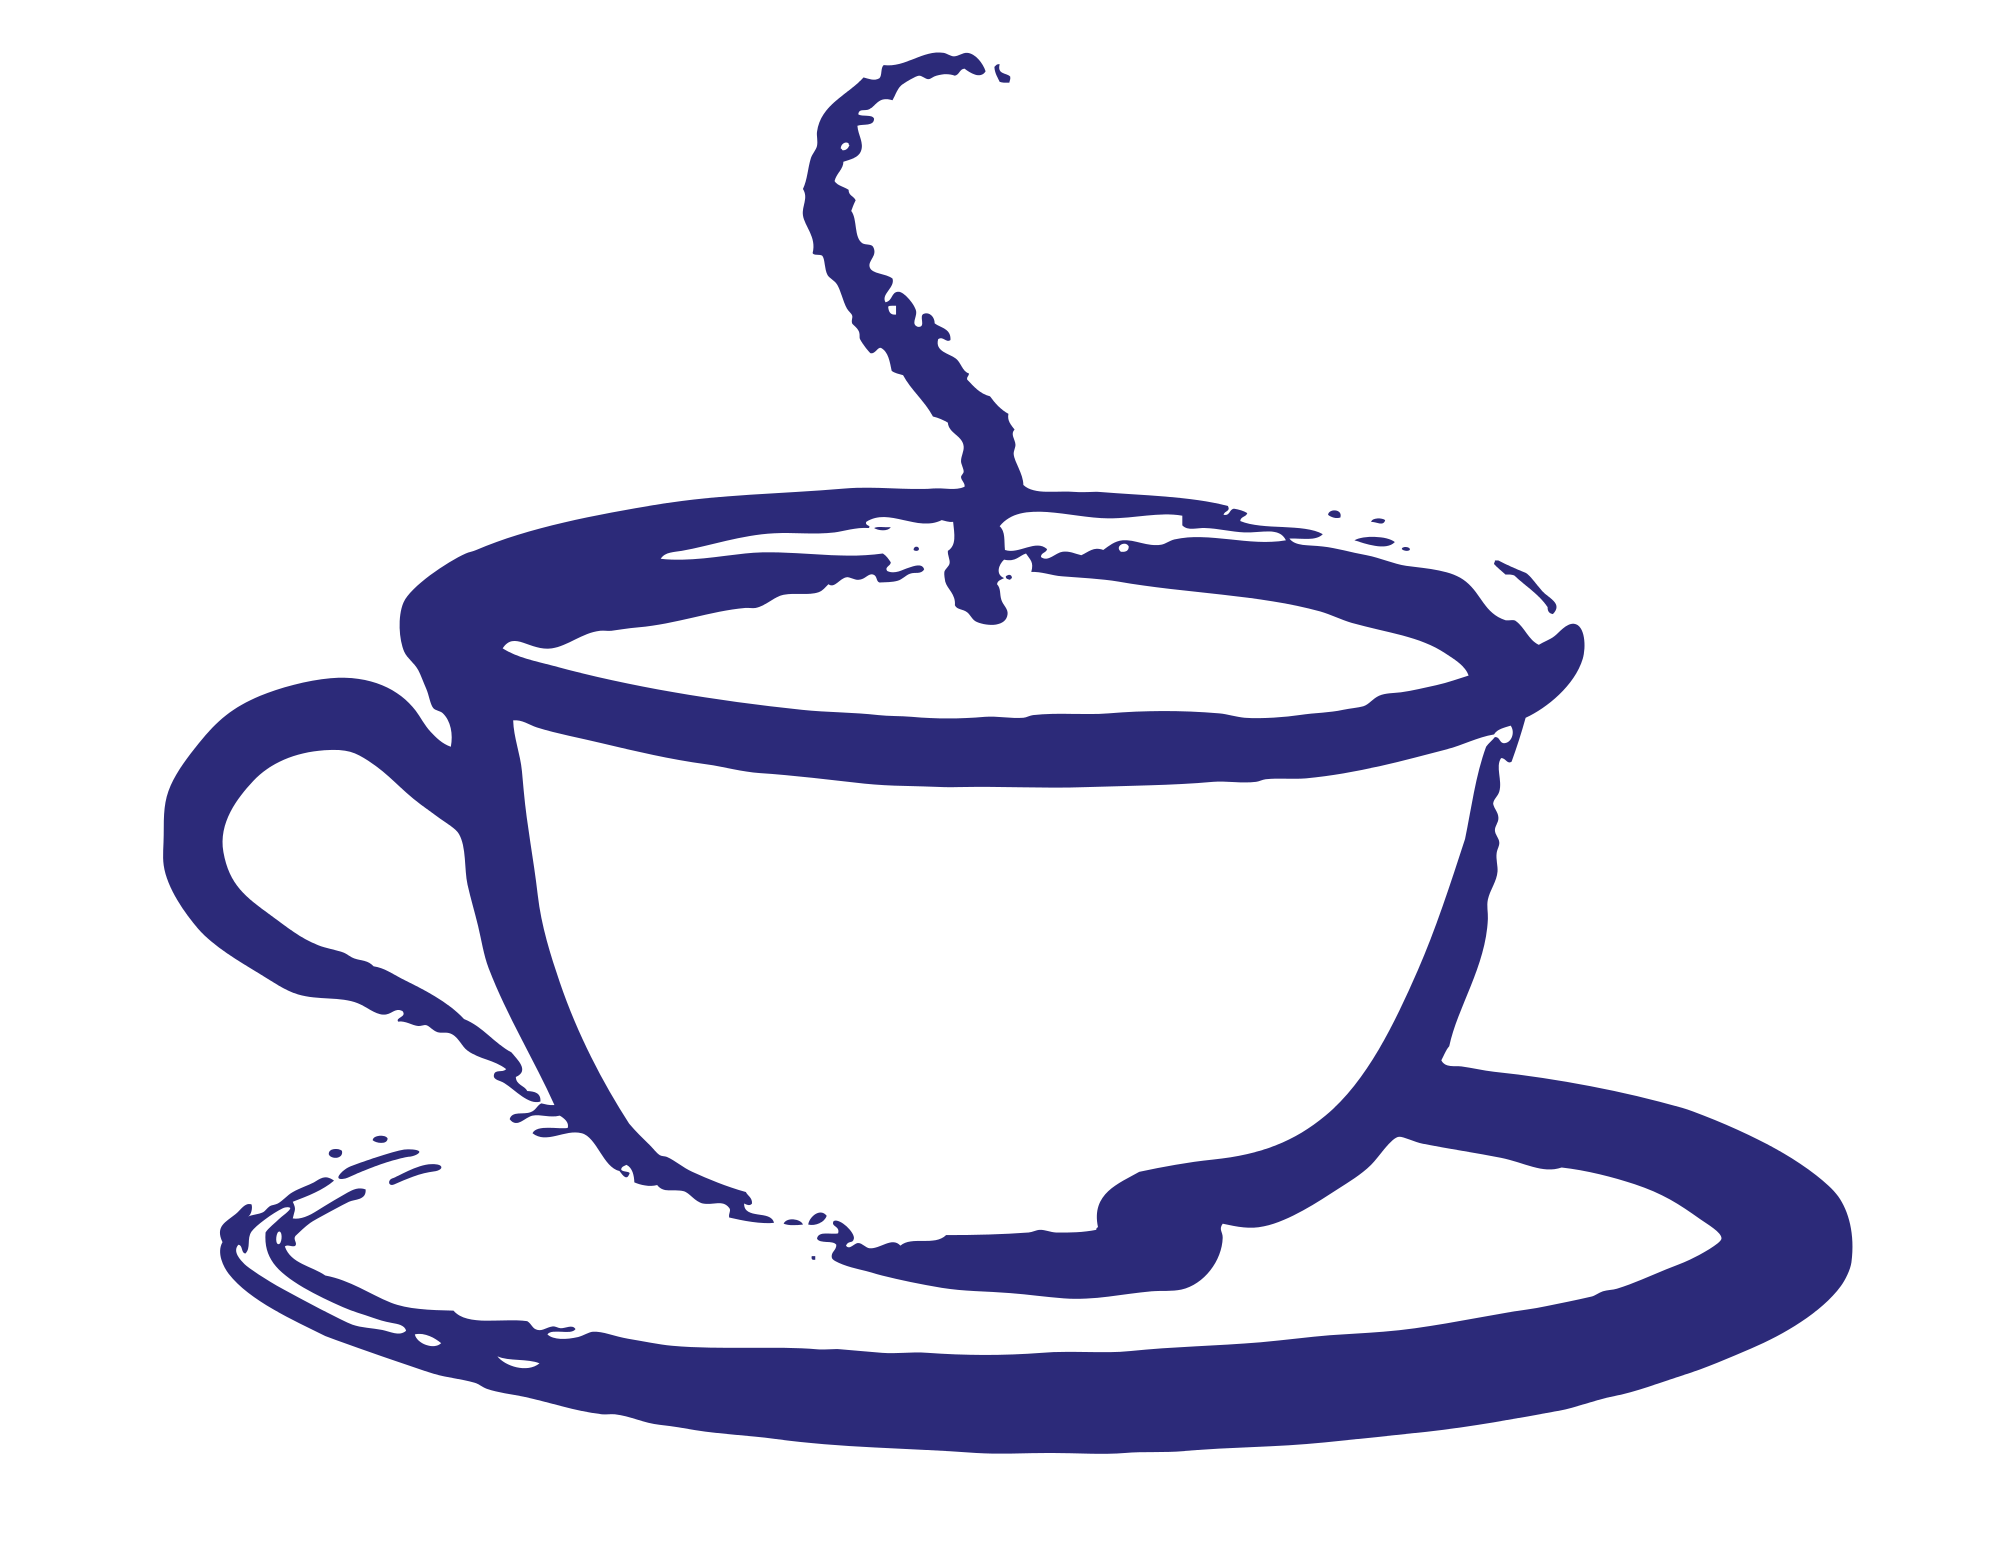 teacup svg sketch